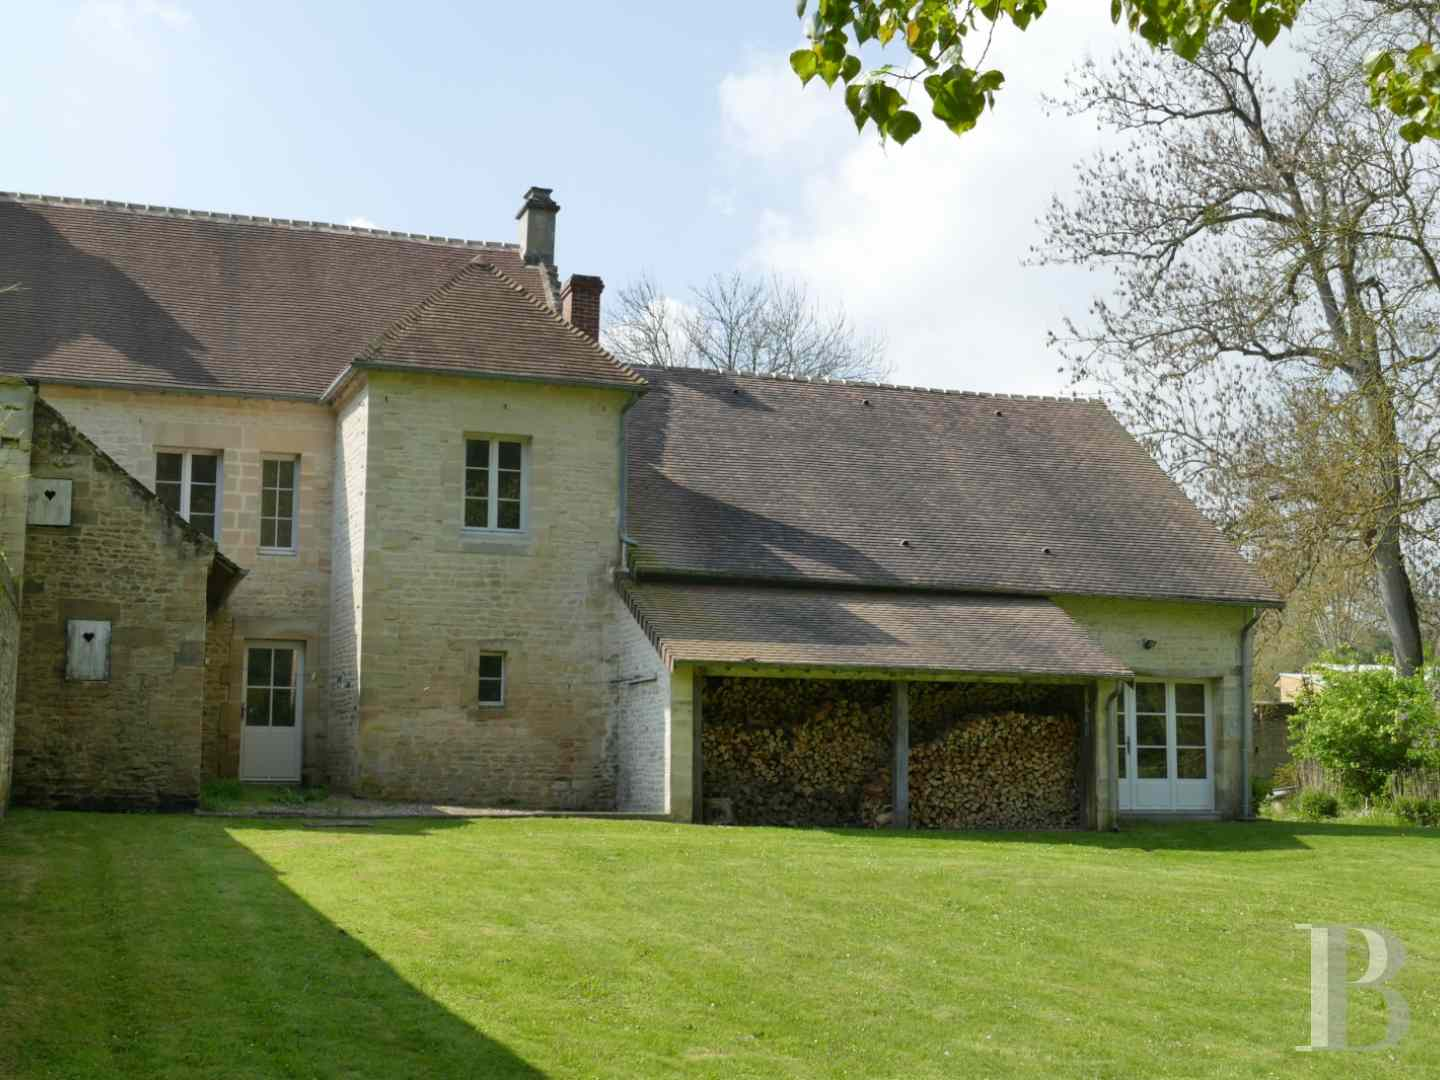 France mansions for sale lower normandy 4025  - 7 zoom